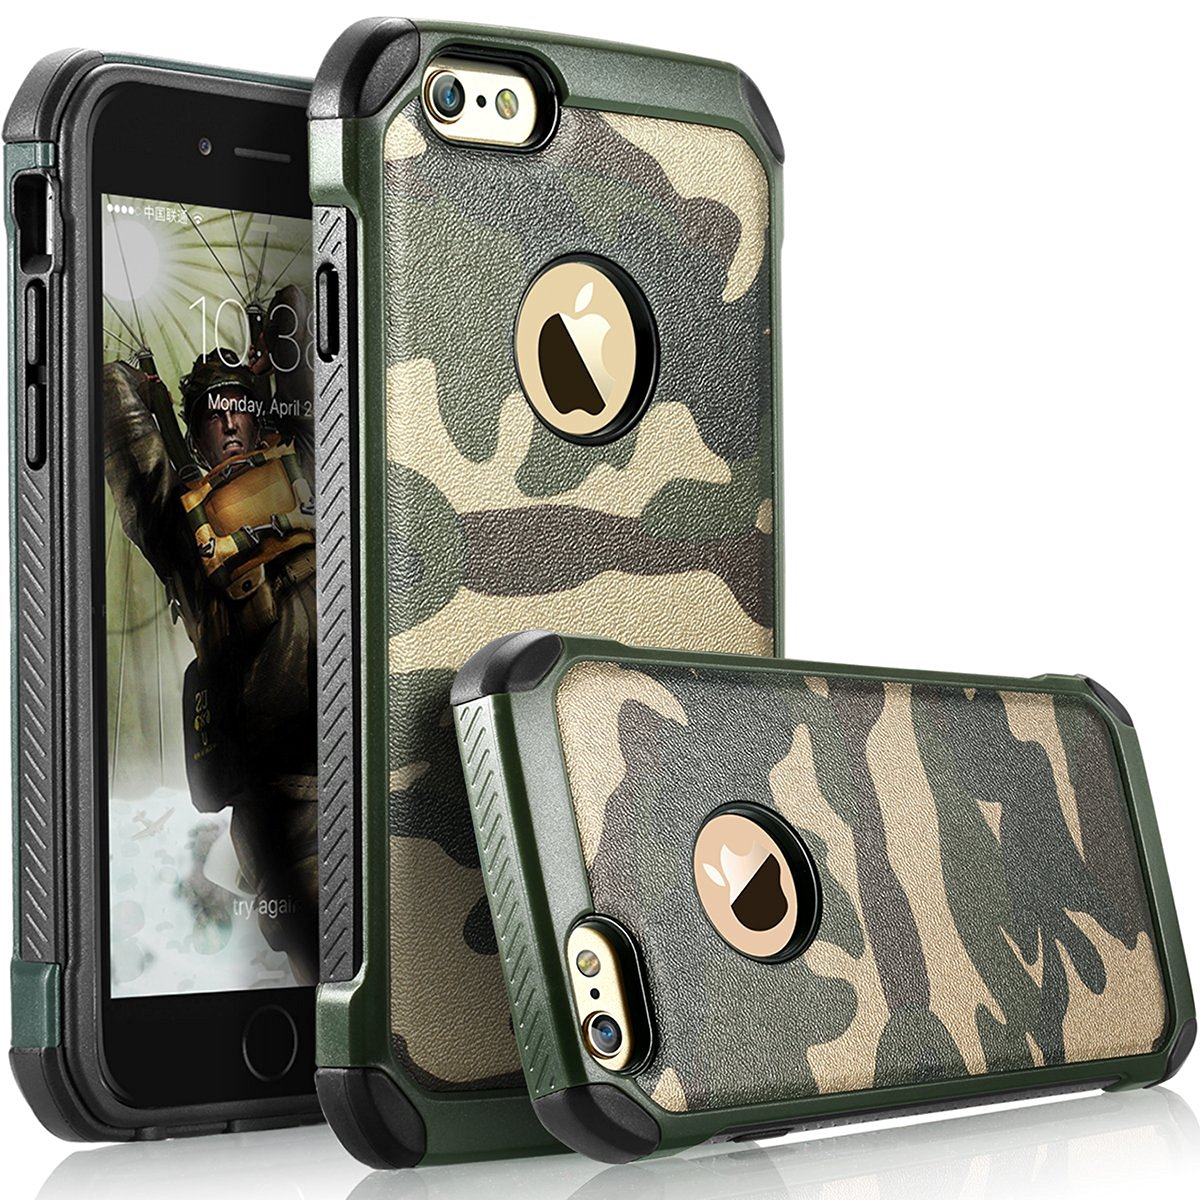 Mypro Camouflage PU/TPU Hybrid Dual Layer Protective Case for iPhone 6 Plus/6S Plus 5.5